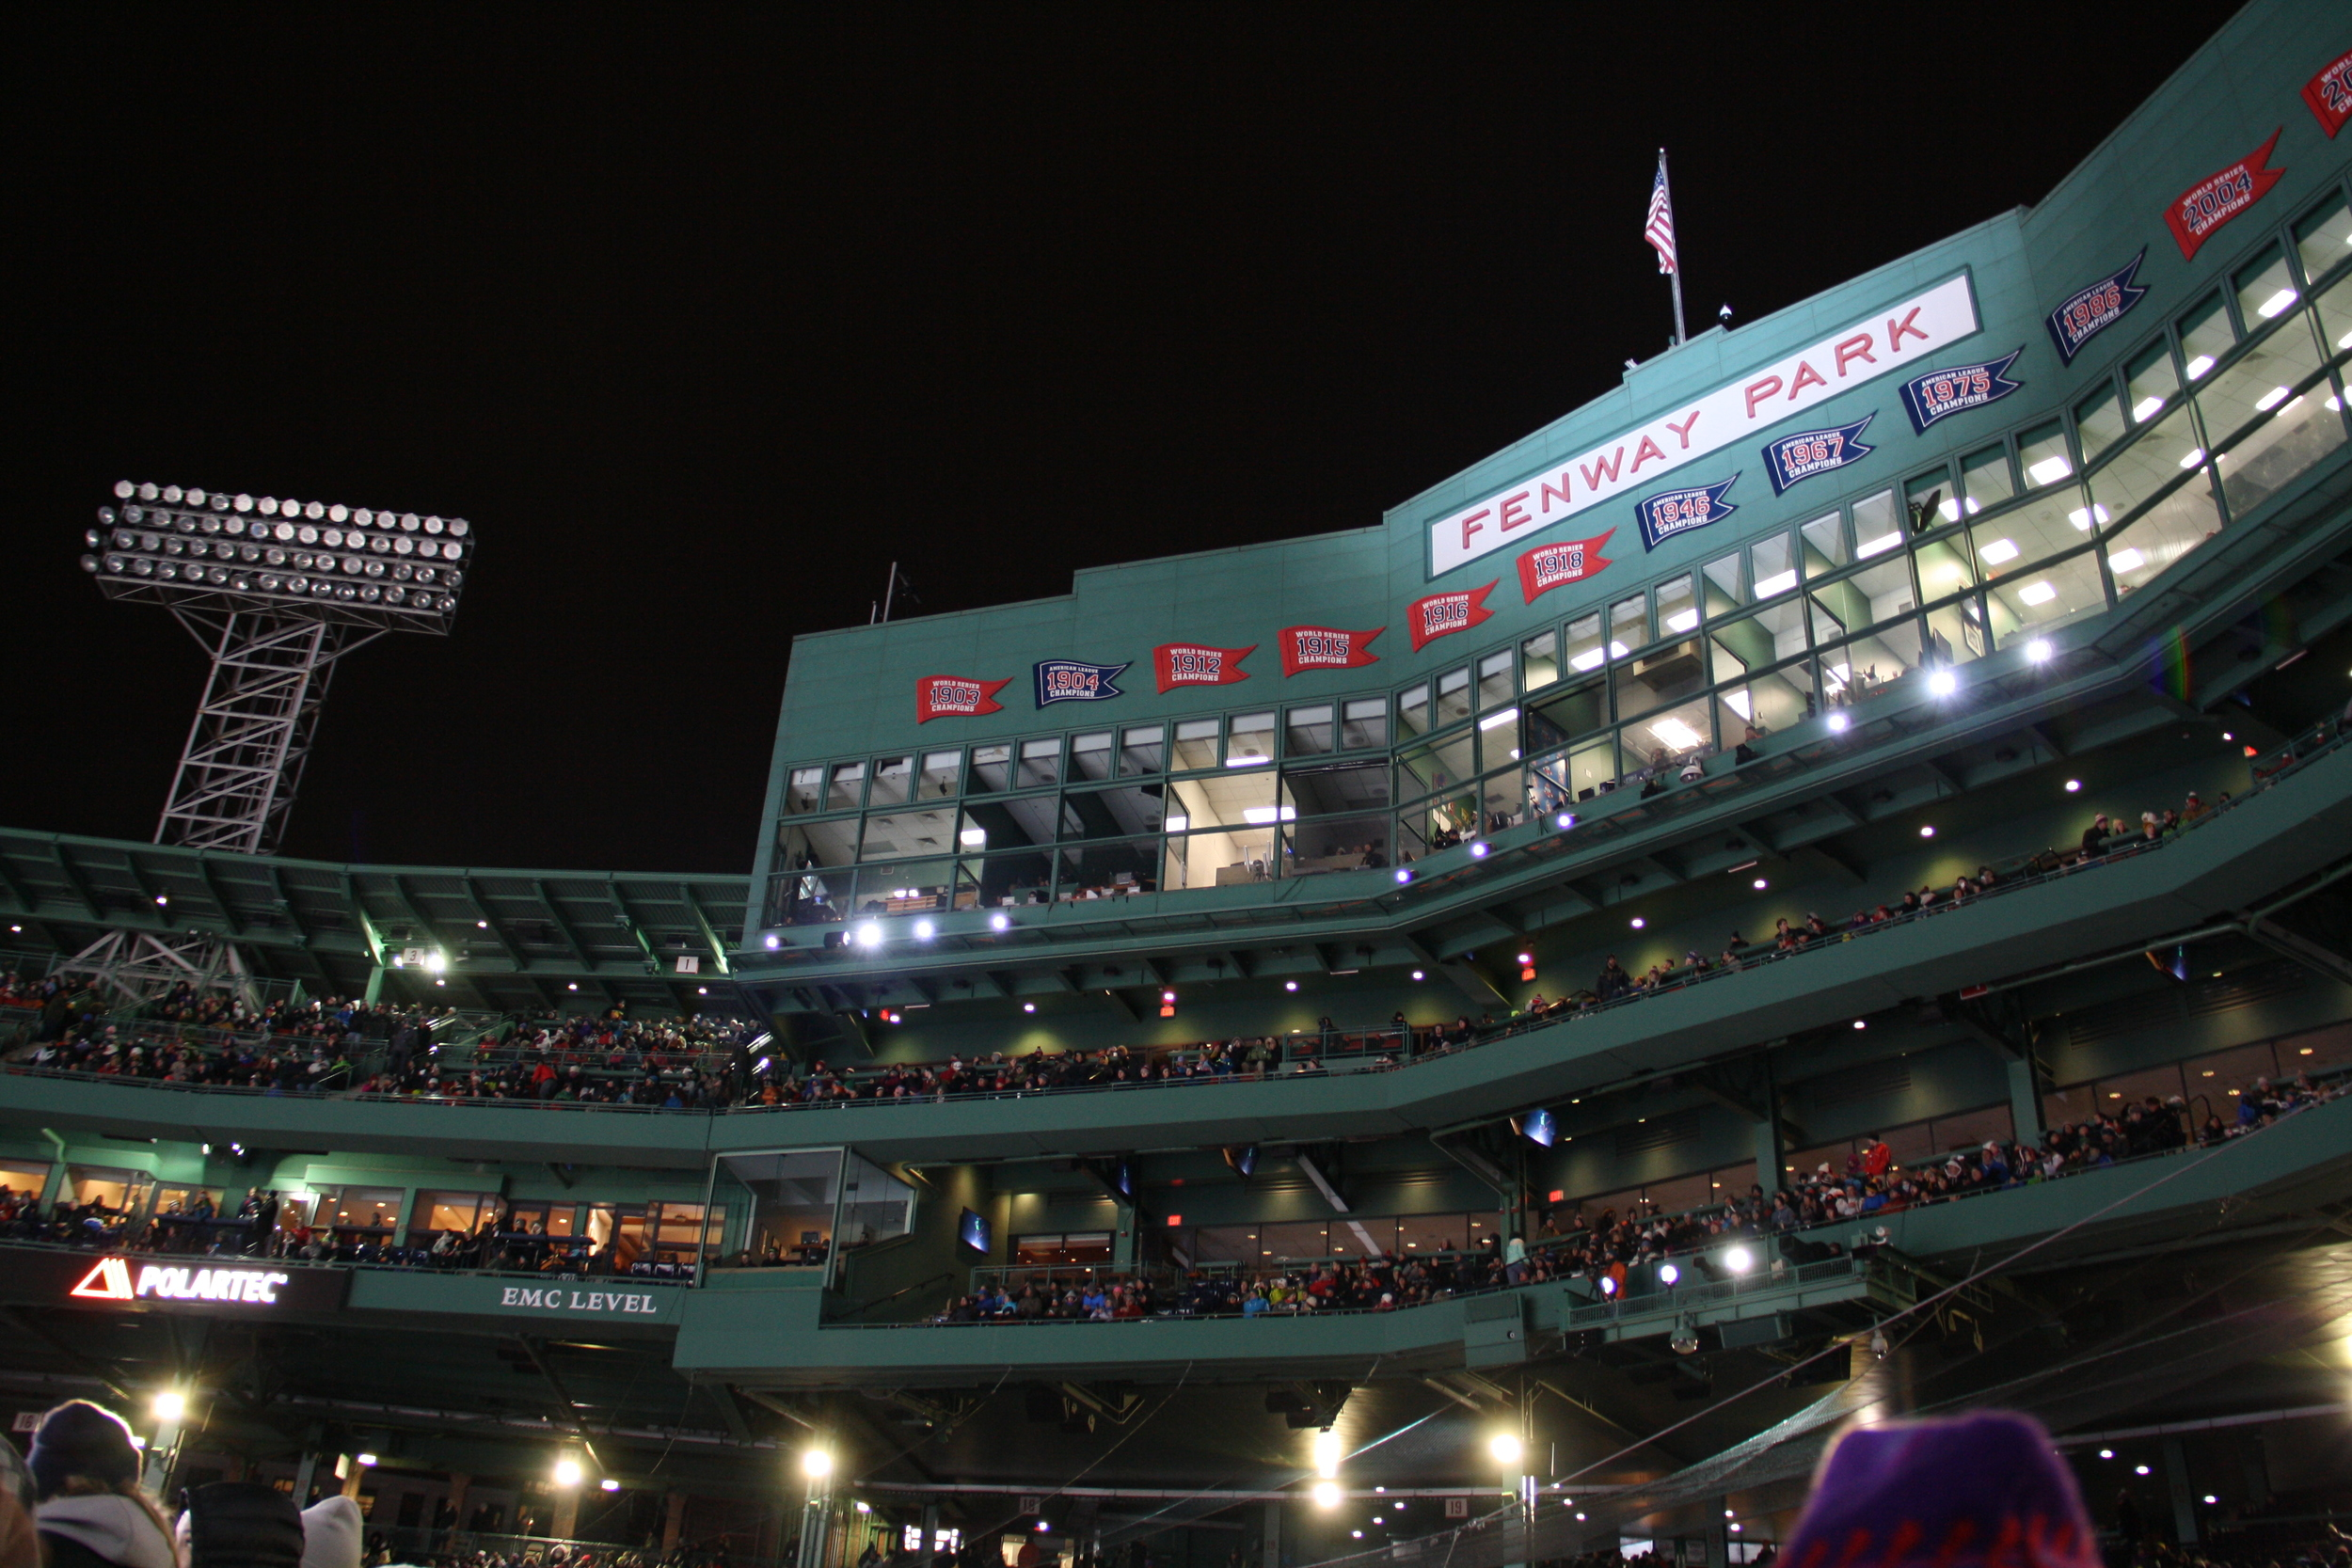 Fenway Park at 140 feet.